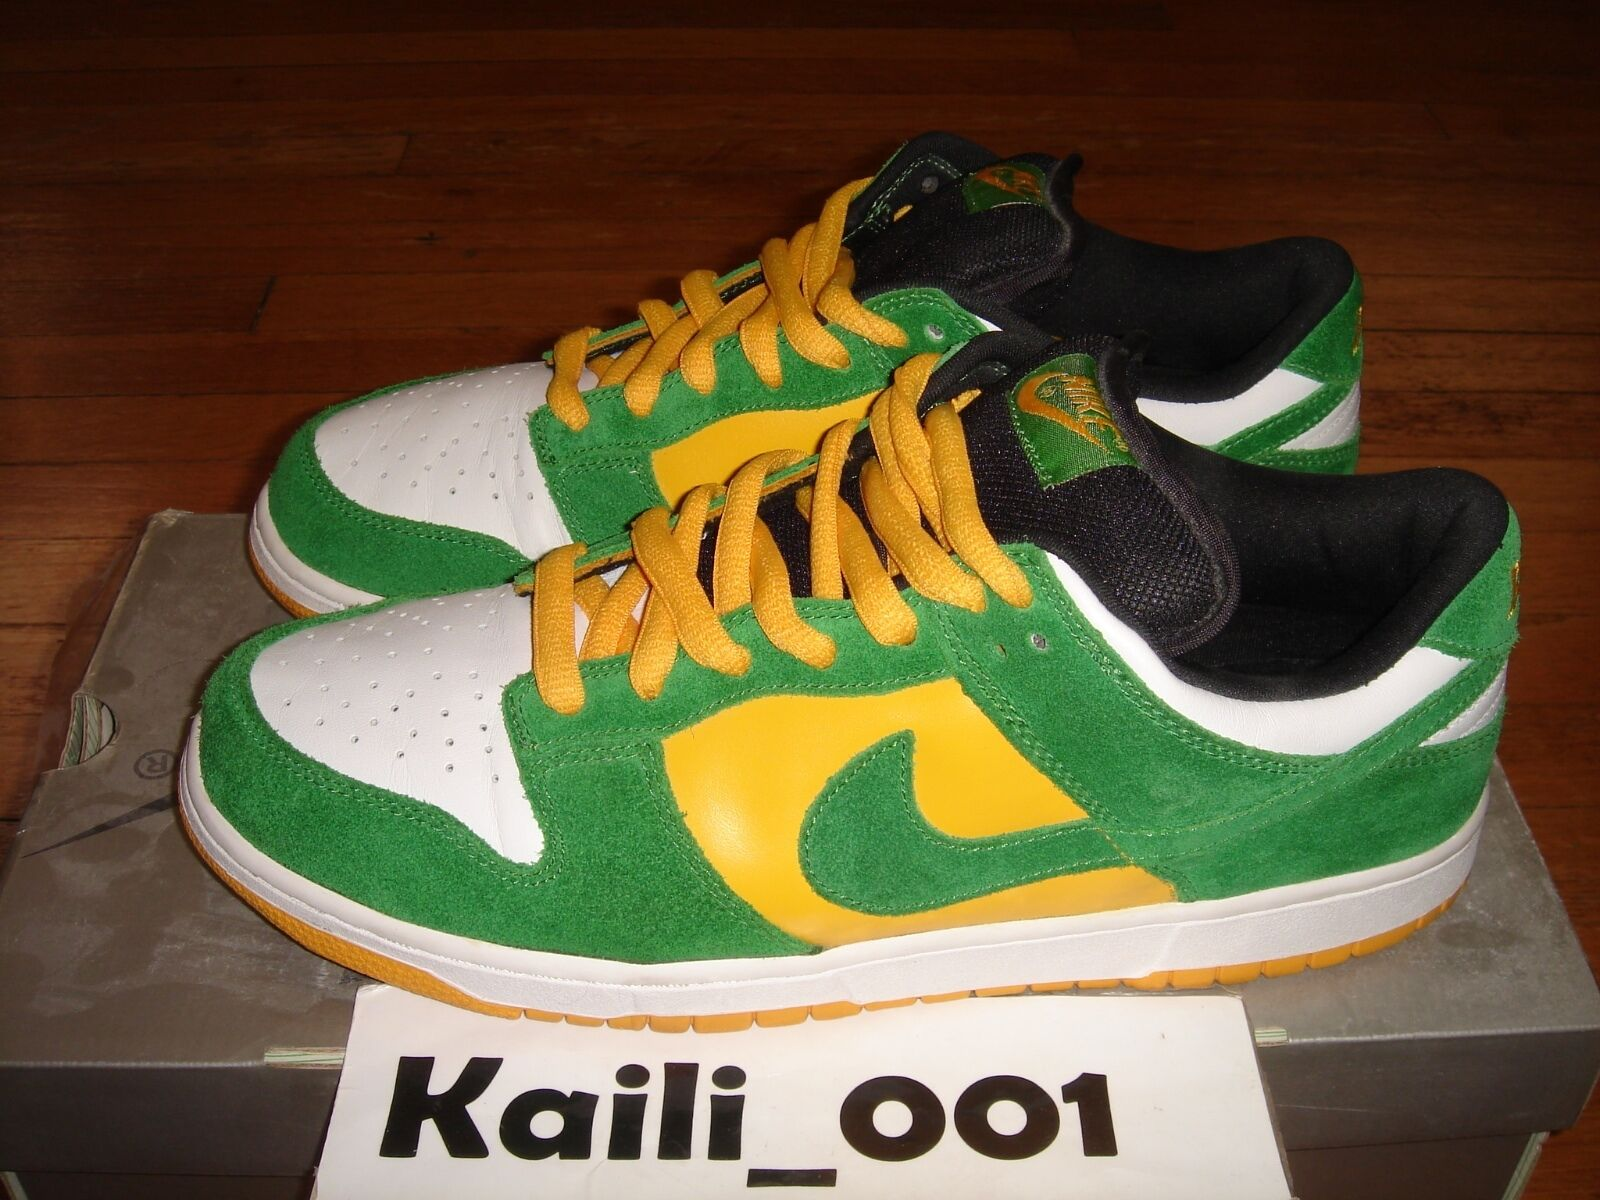 Nike Dunk Low Pro SB Size 12 Bucks USED WORN 304292-132 Flashes Loden Forbes B